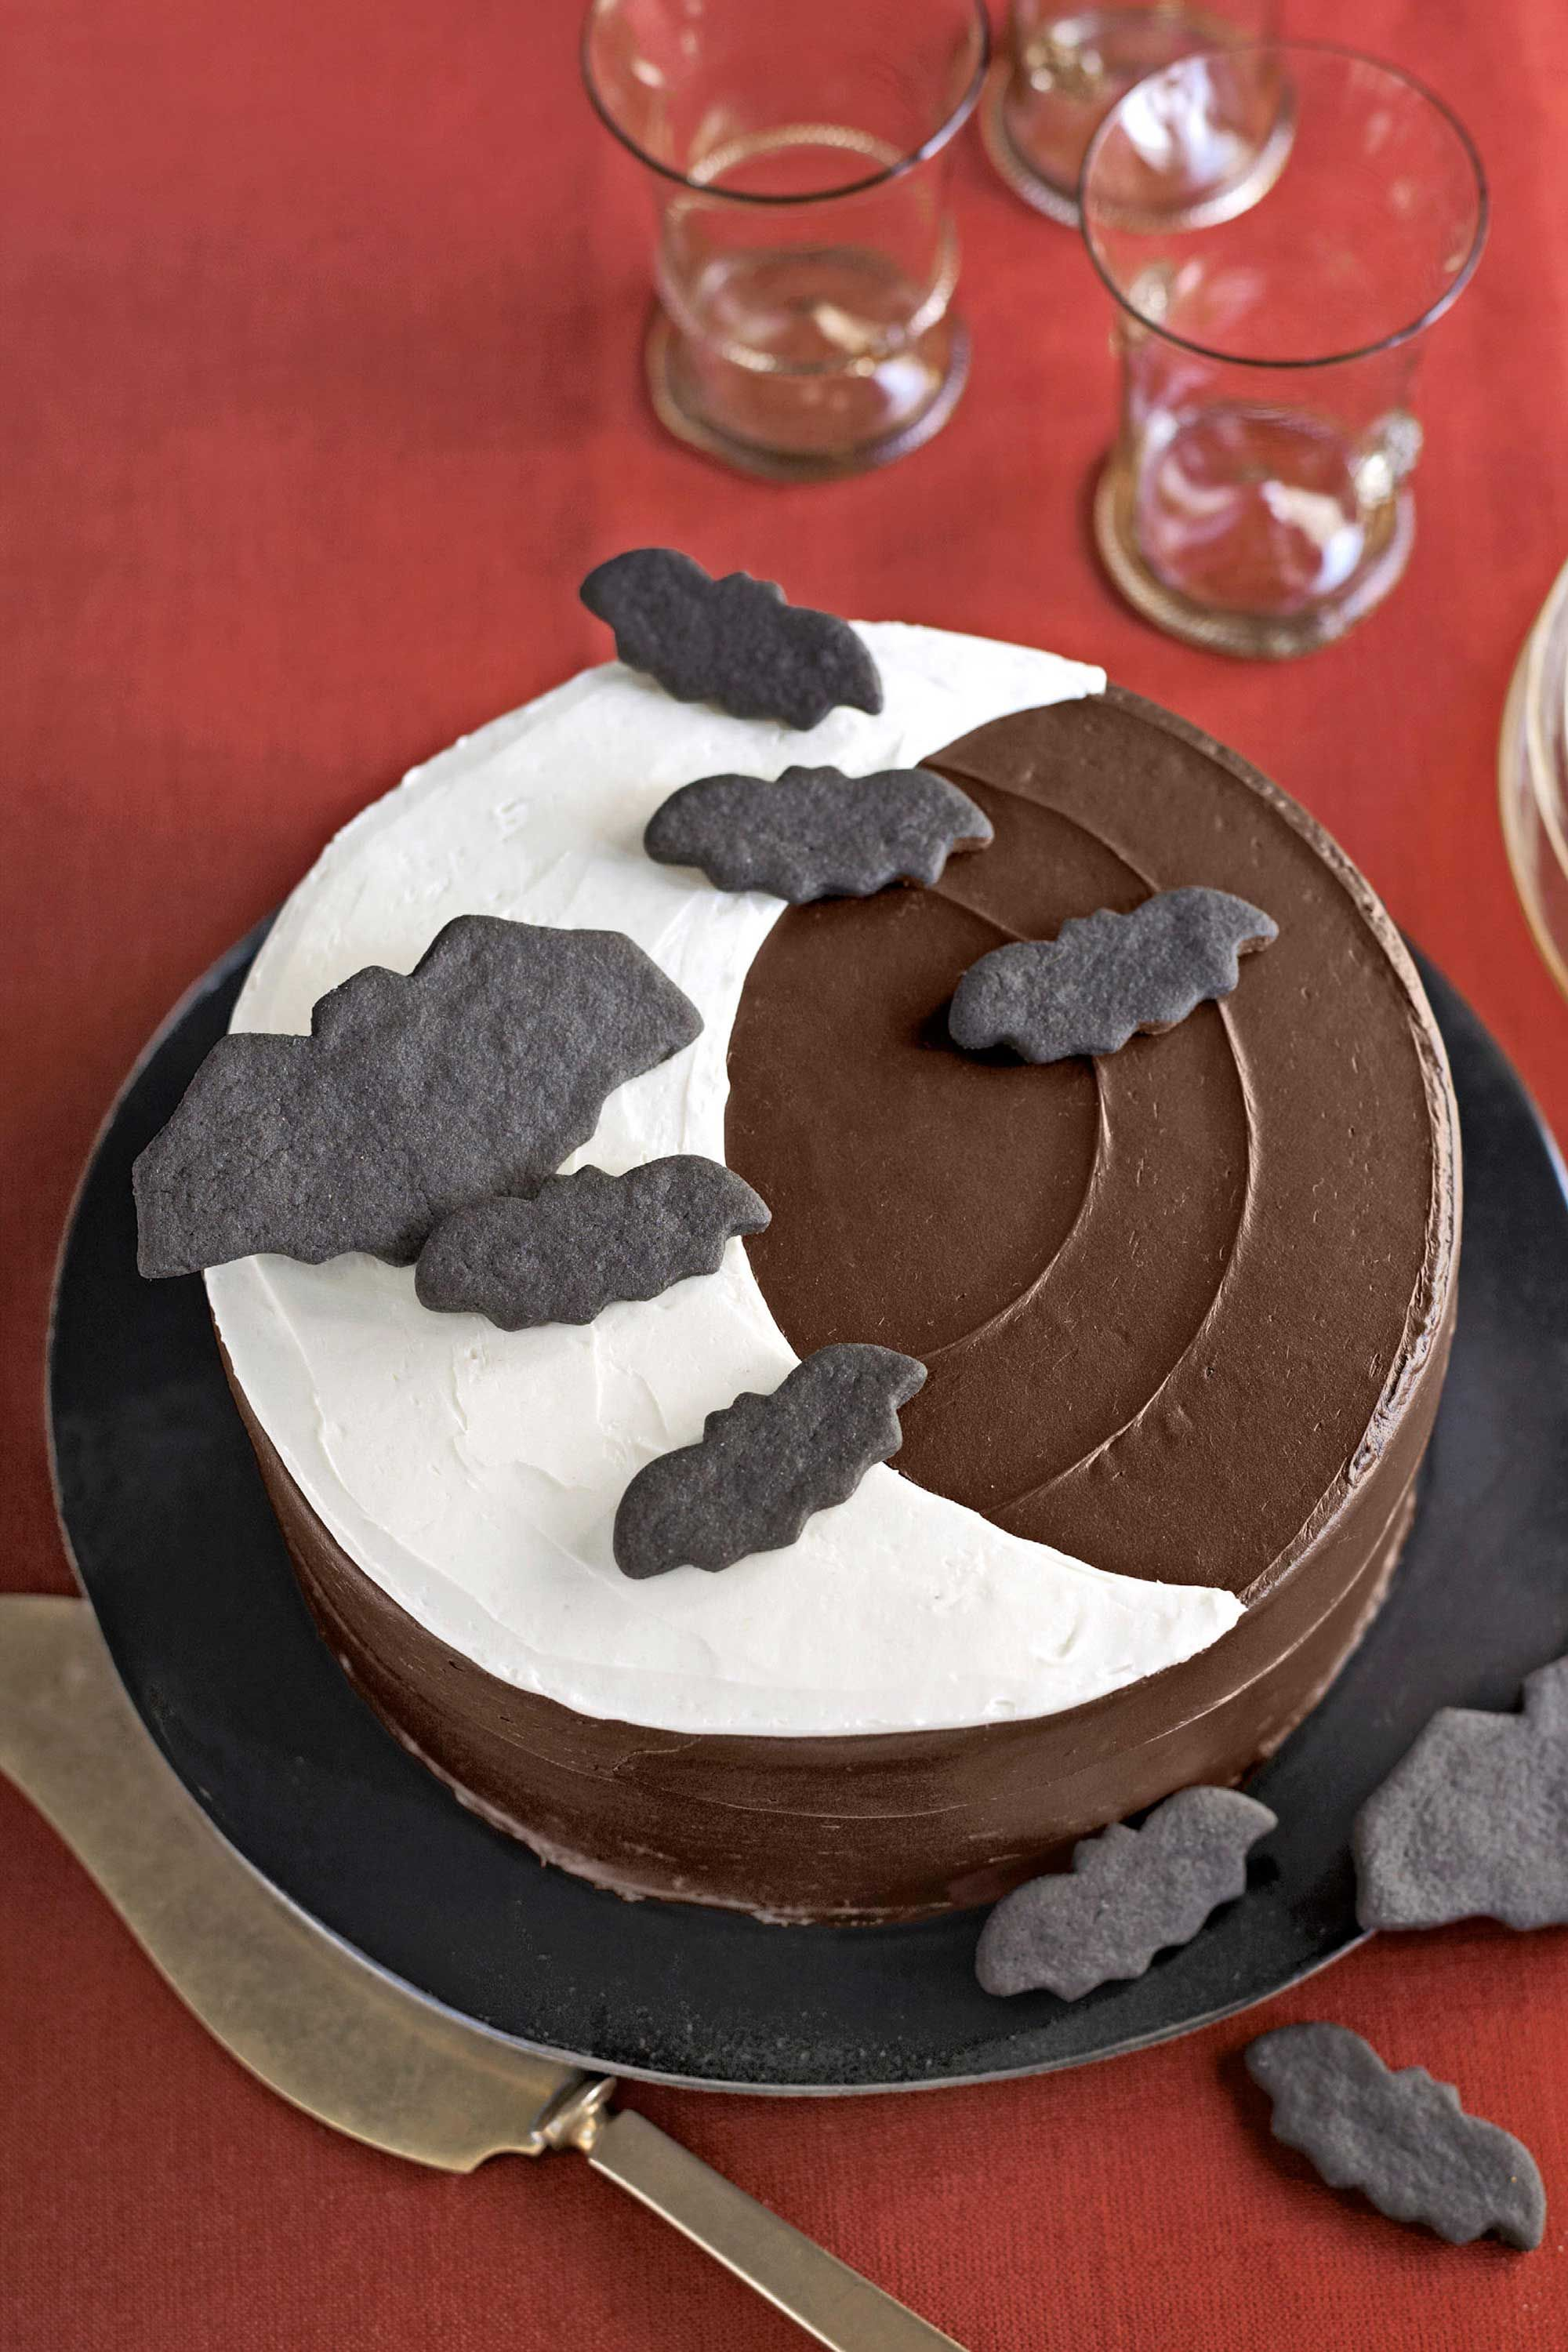 61 Utterly Bewitching Halloween Cakes | Backen